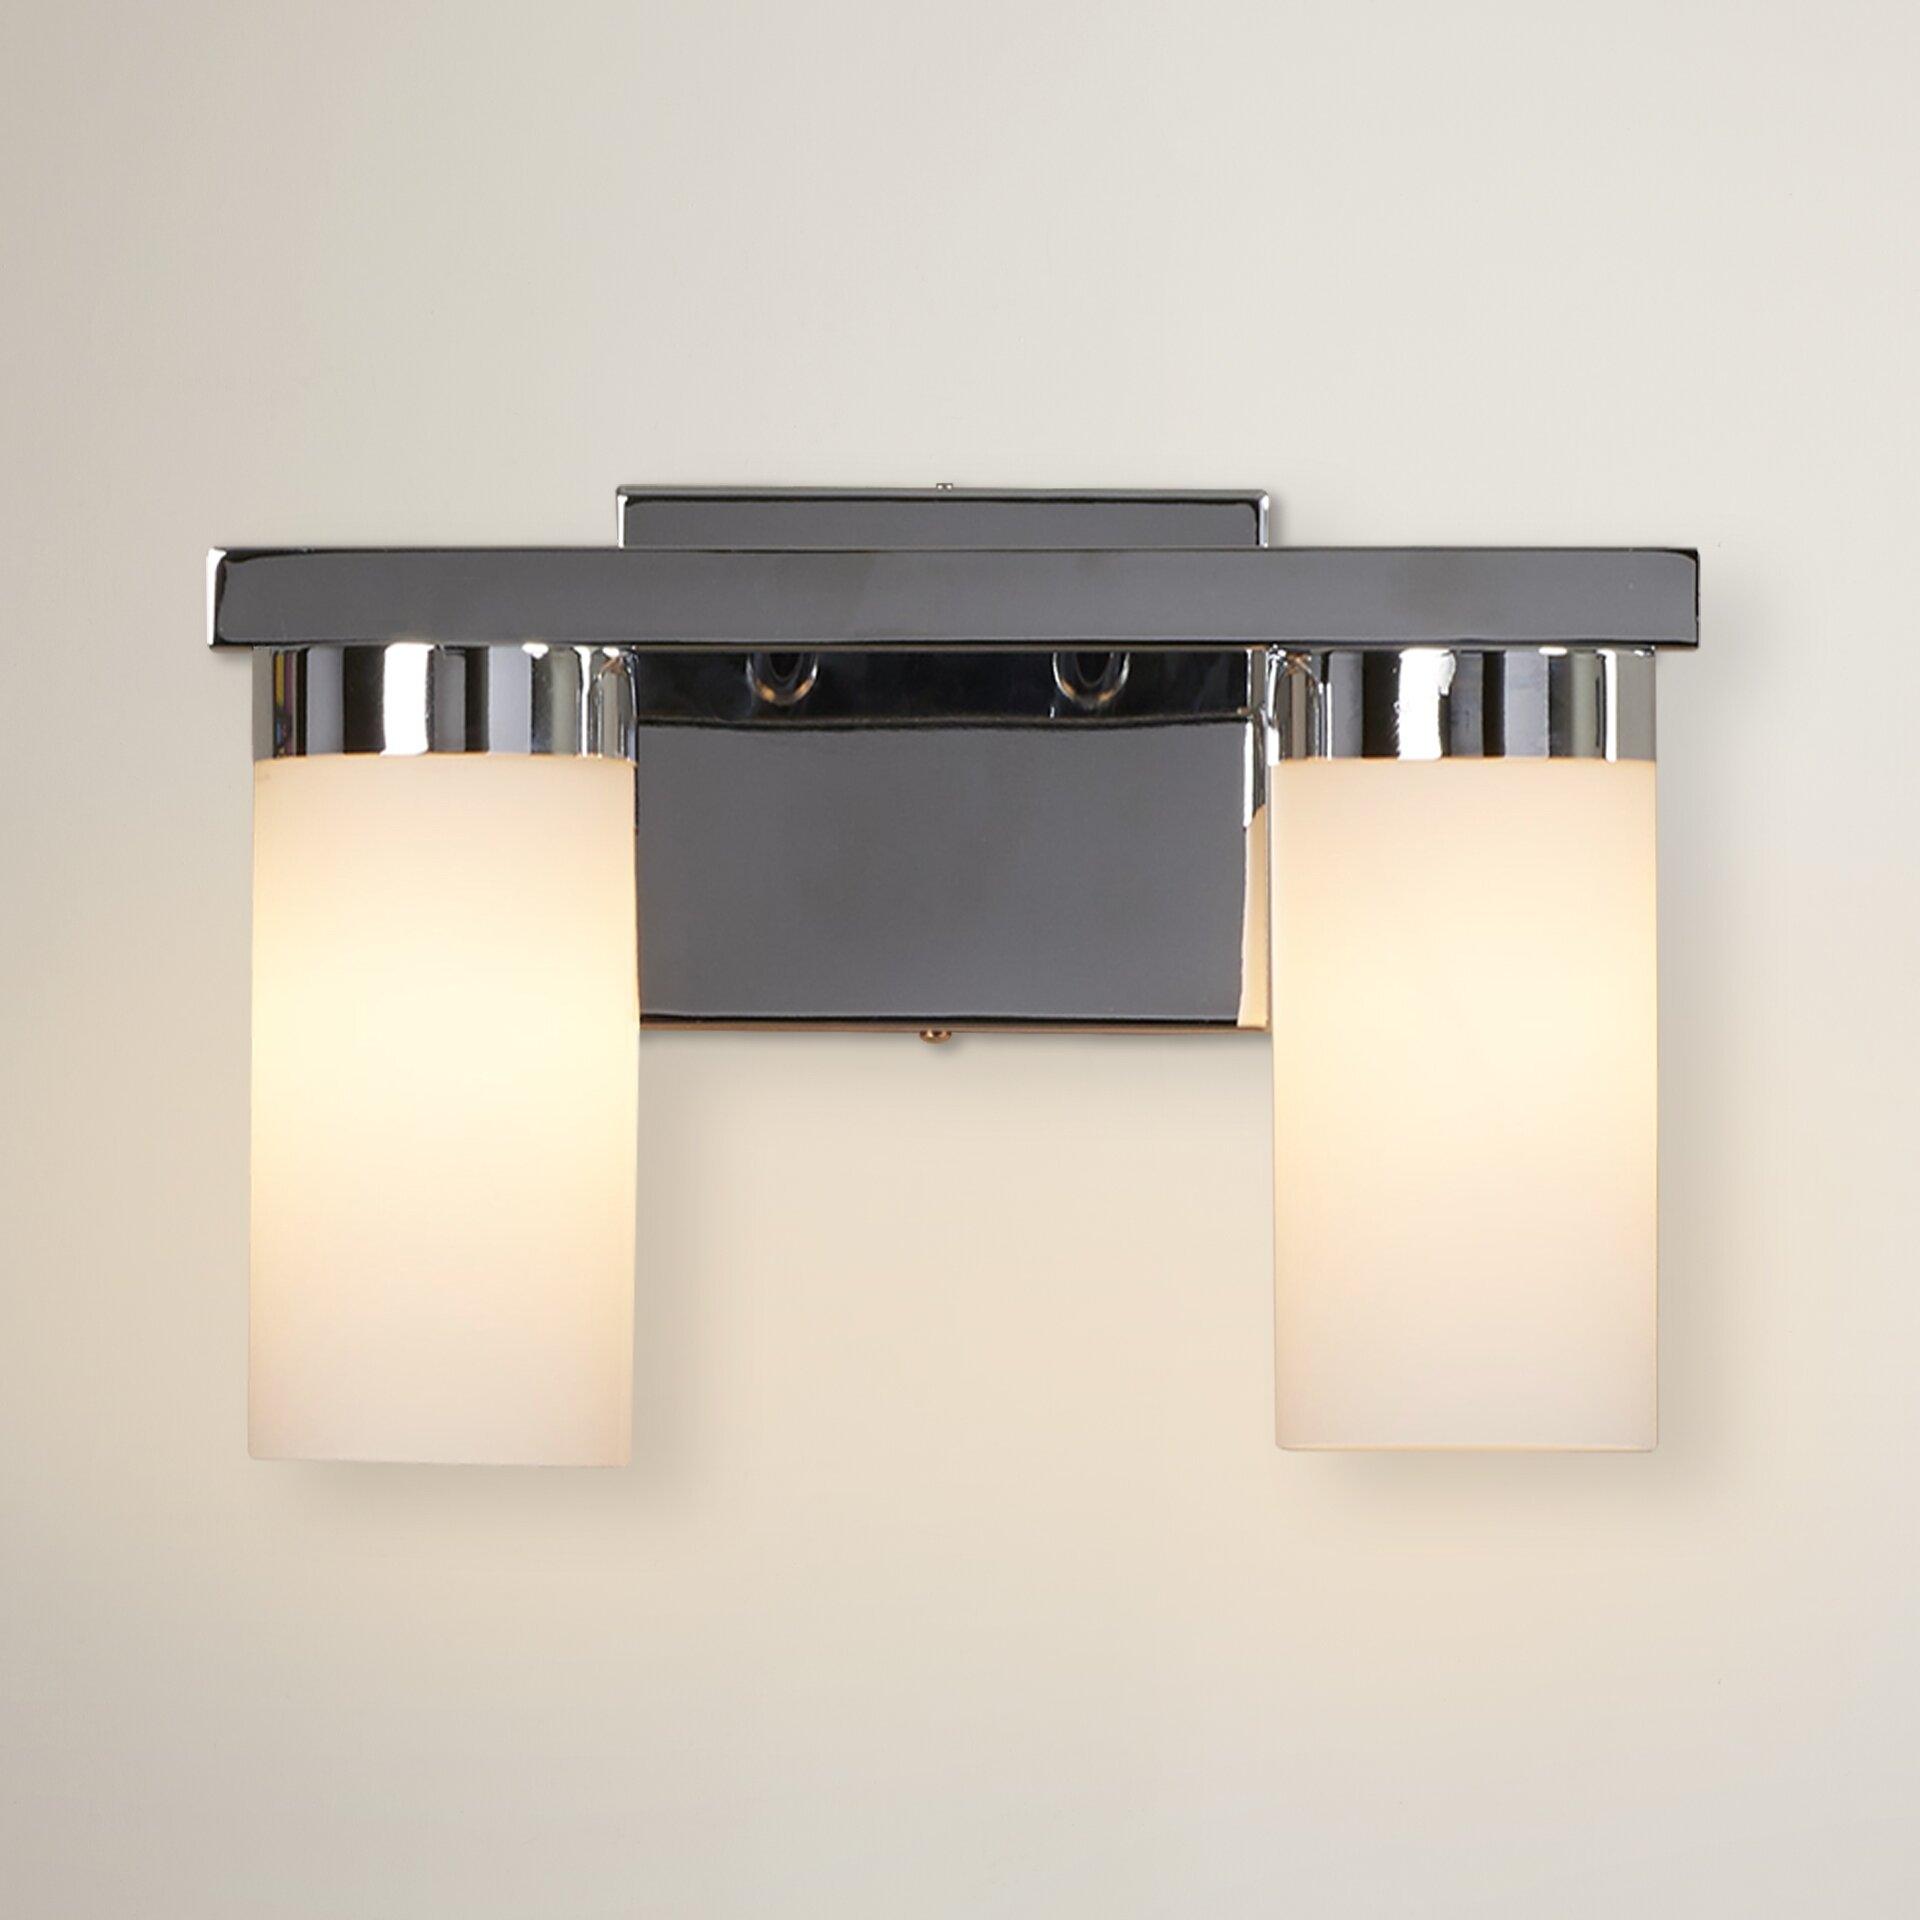 Varick Gallery Dover 2 Light Vanity Light & Reviews Wayfair.ca